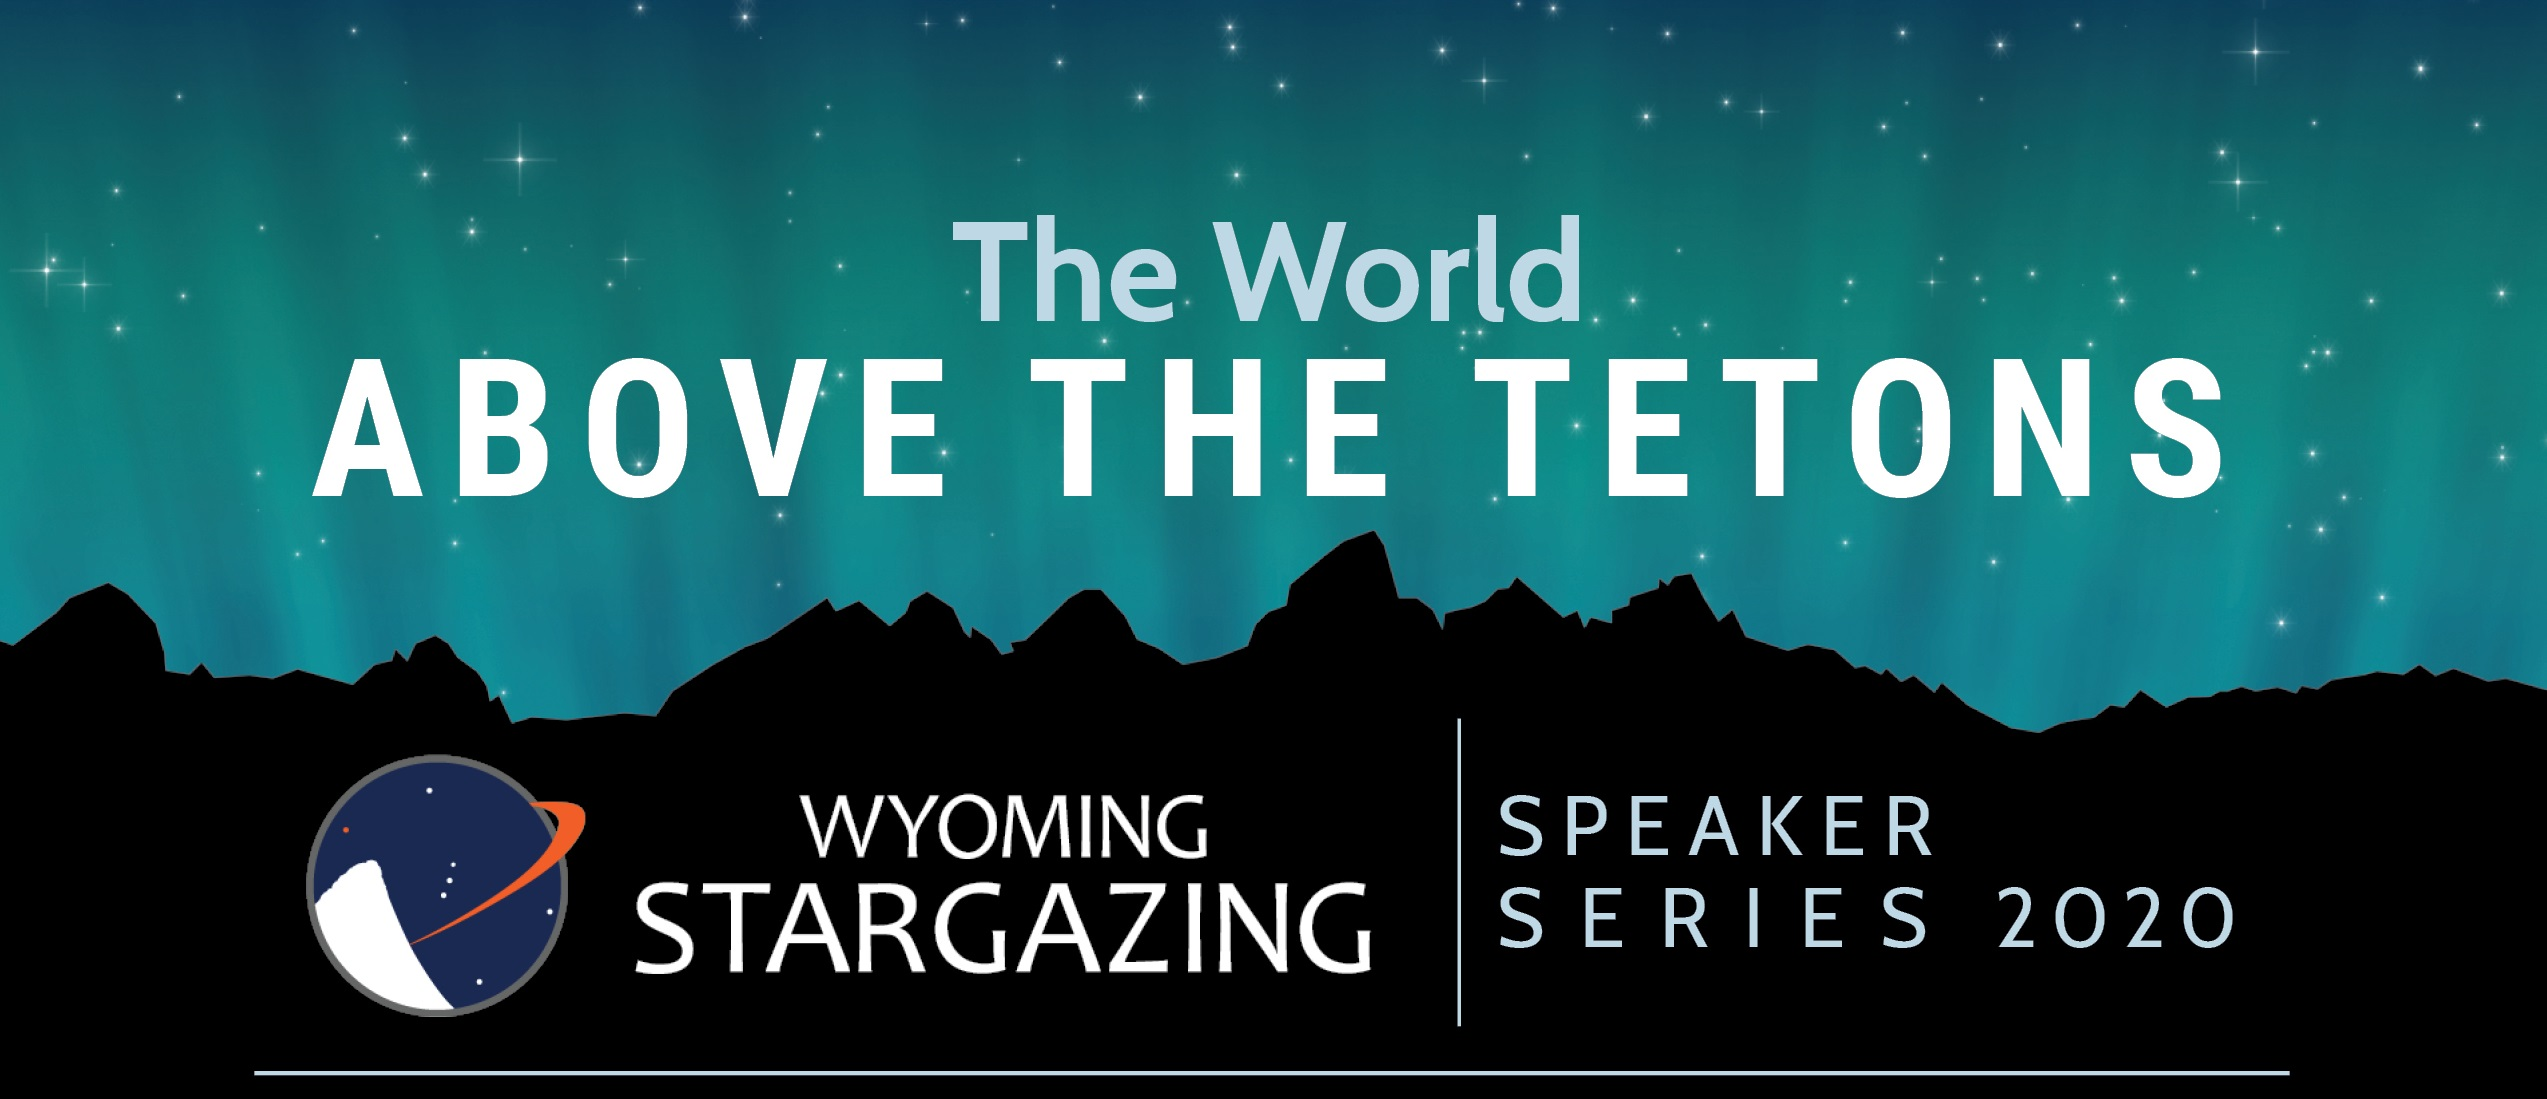 The World Above the Tetons | Speaker Series 2020